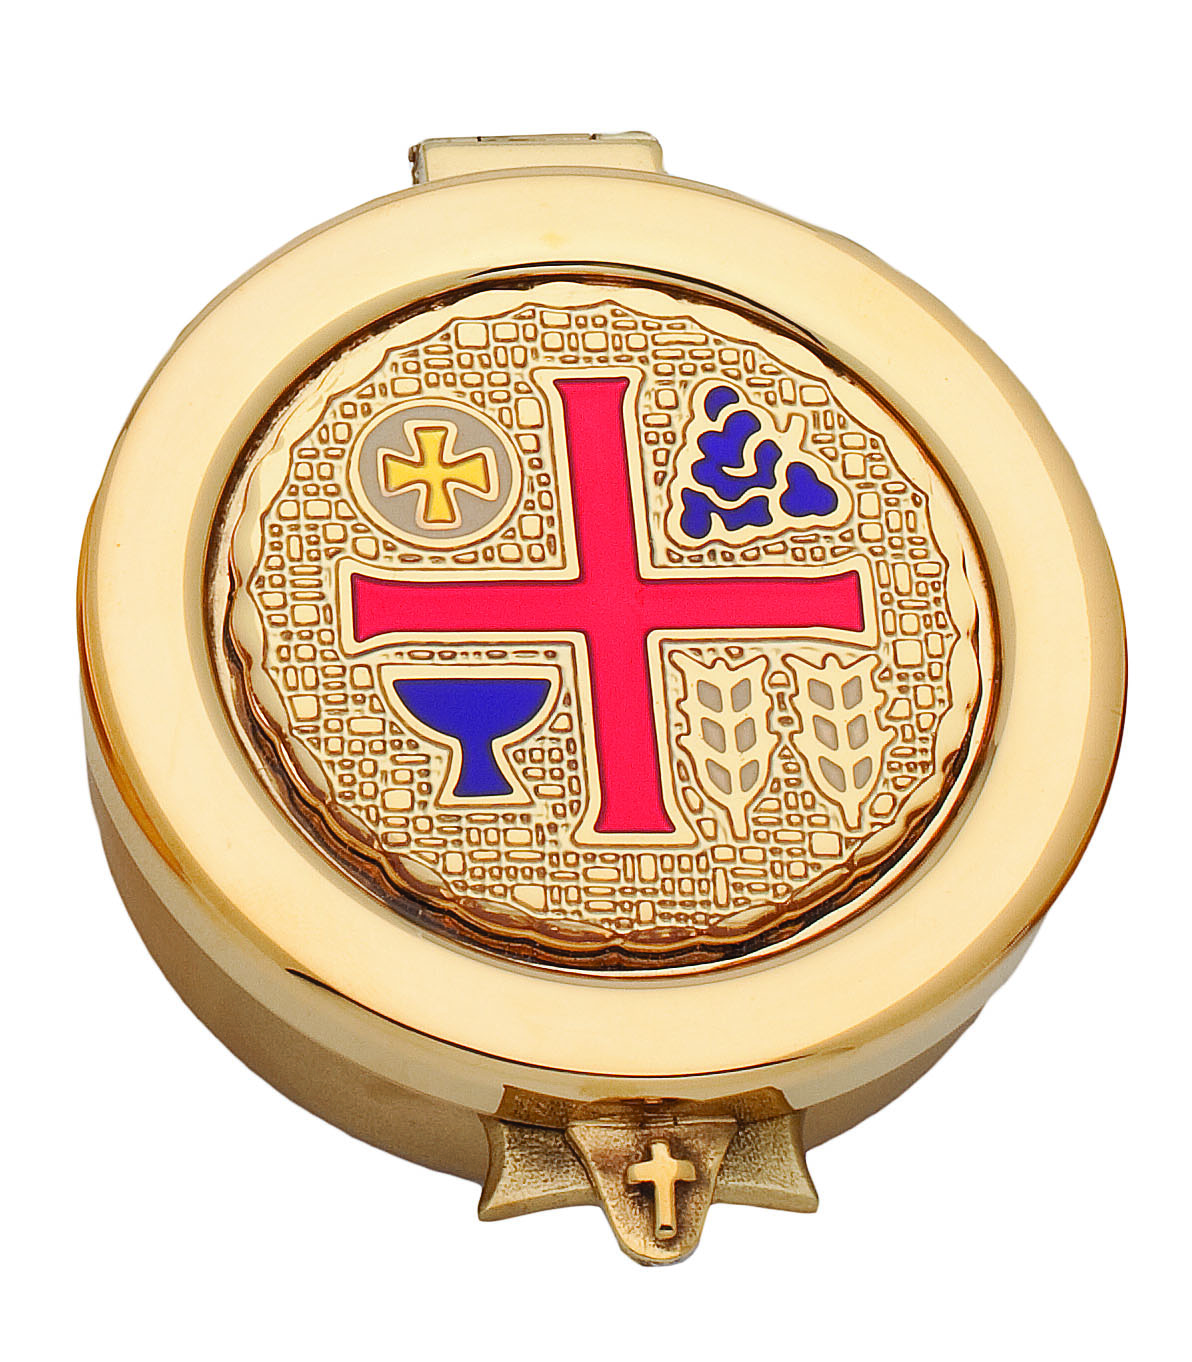 3208G Pyx pyx, sacred vessal, host carrier, alviti creations, 3208g, gold/ enamel pyx, church good, eucharistic minister,